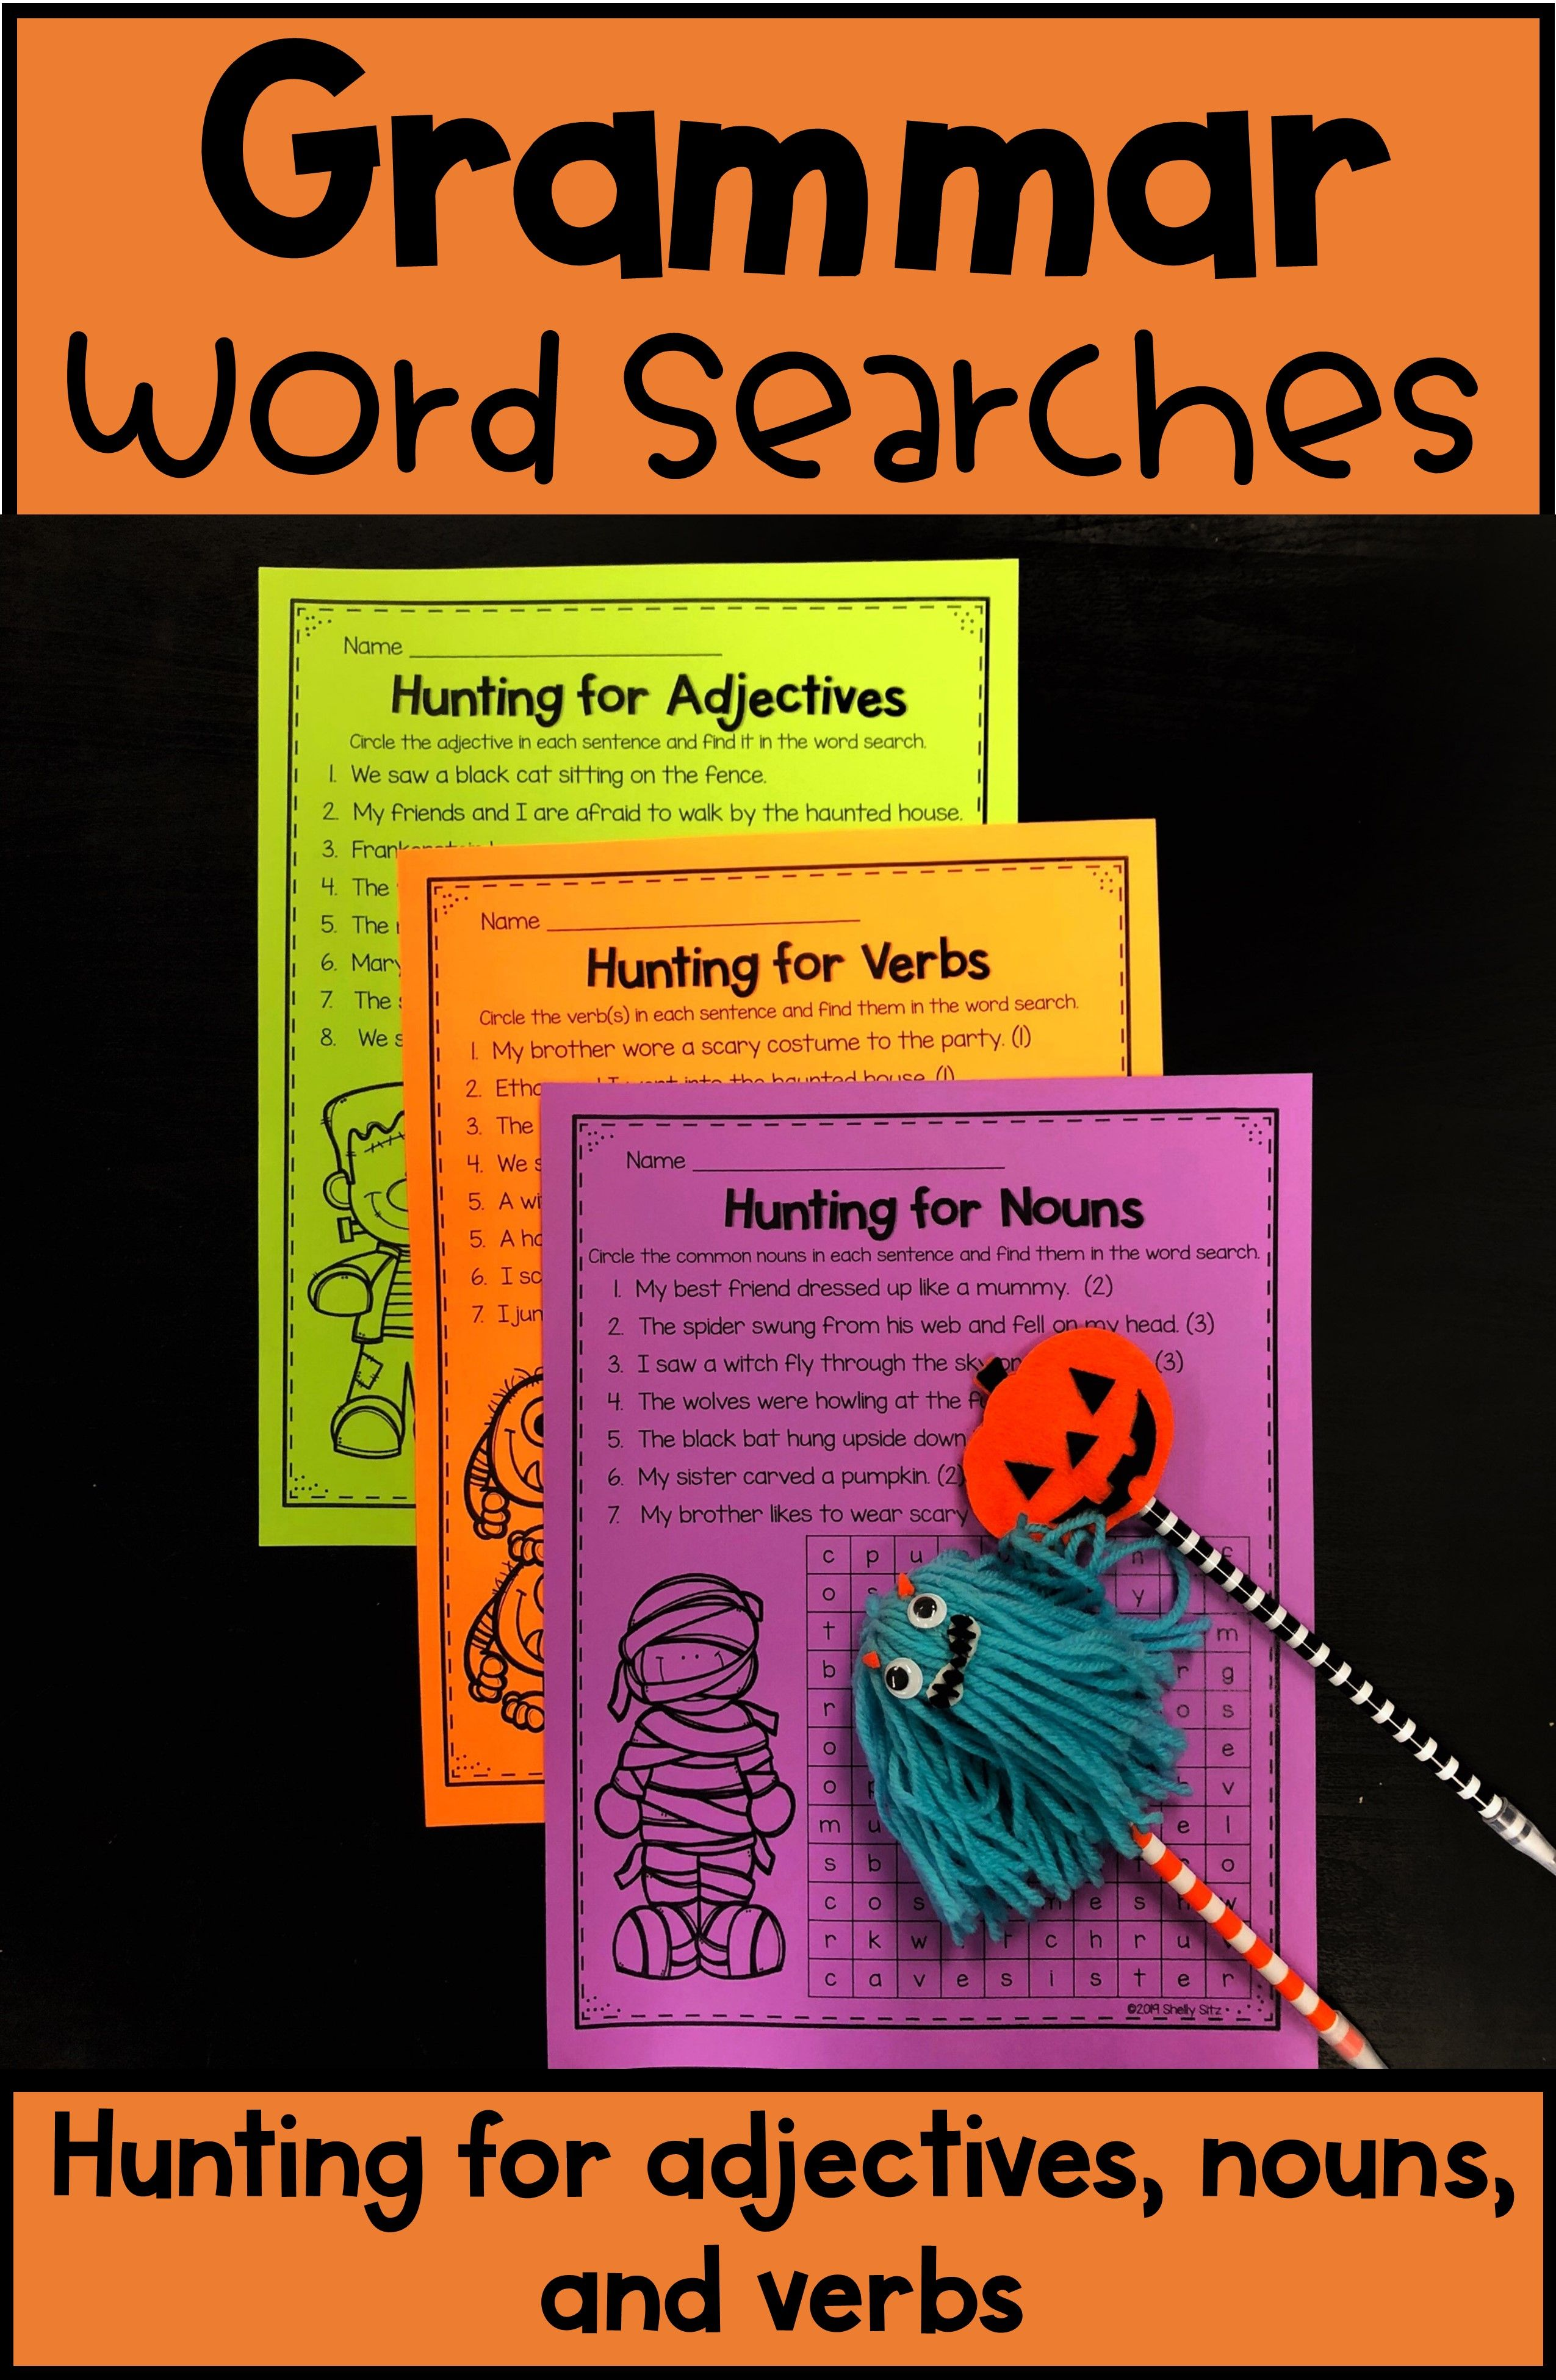 Grammar Word Searches